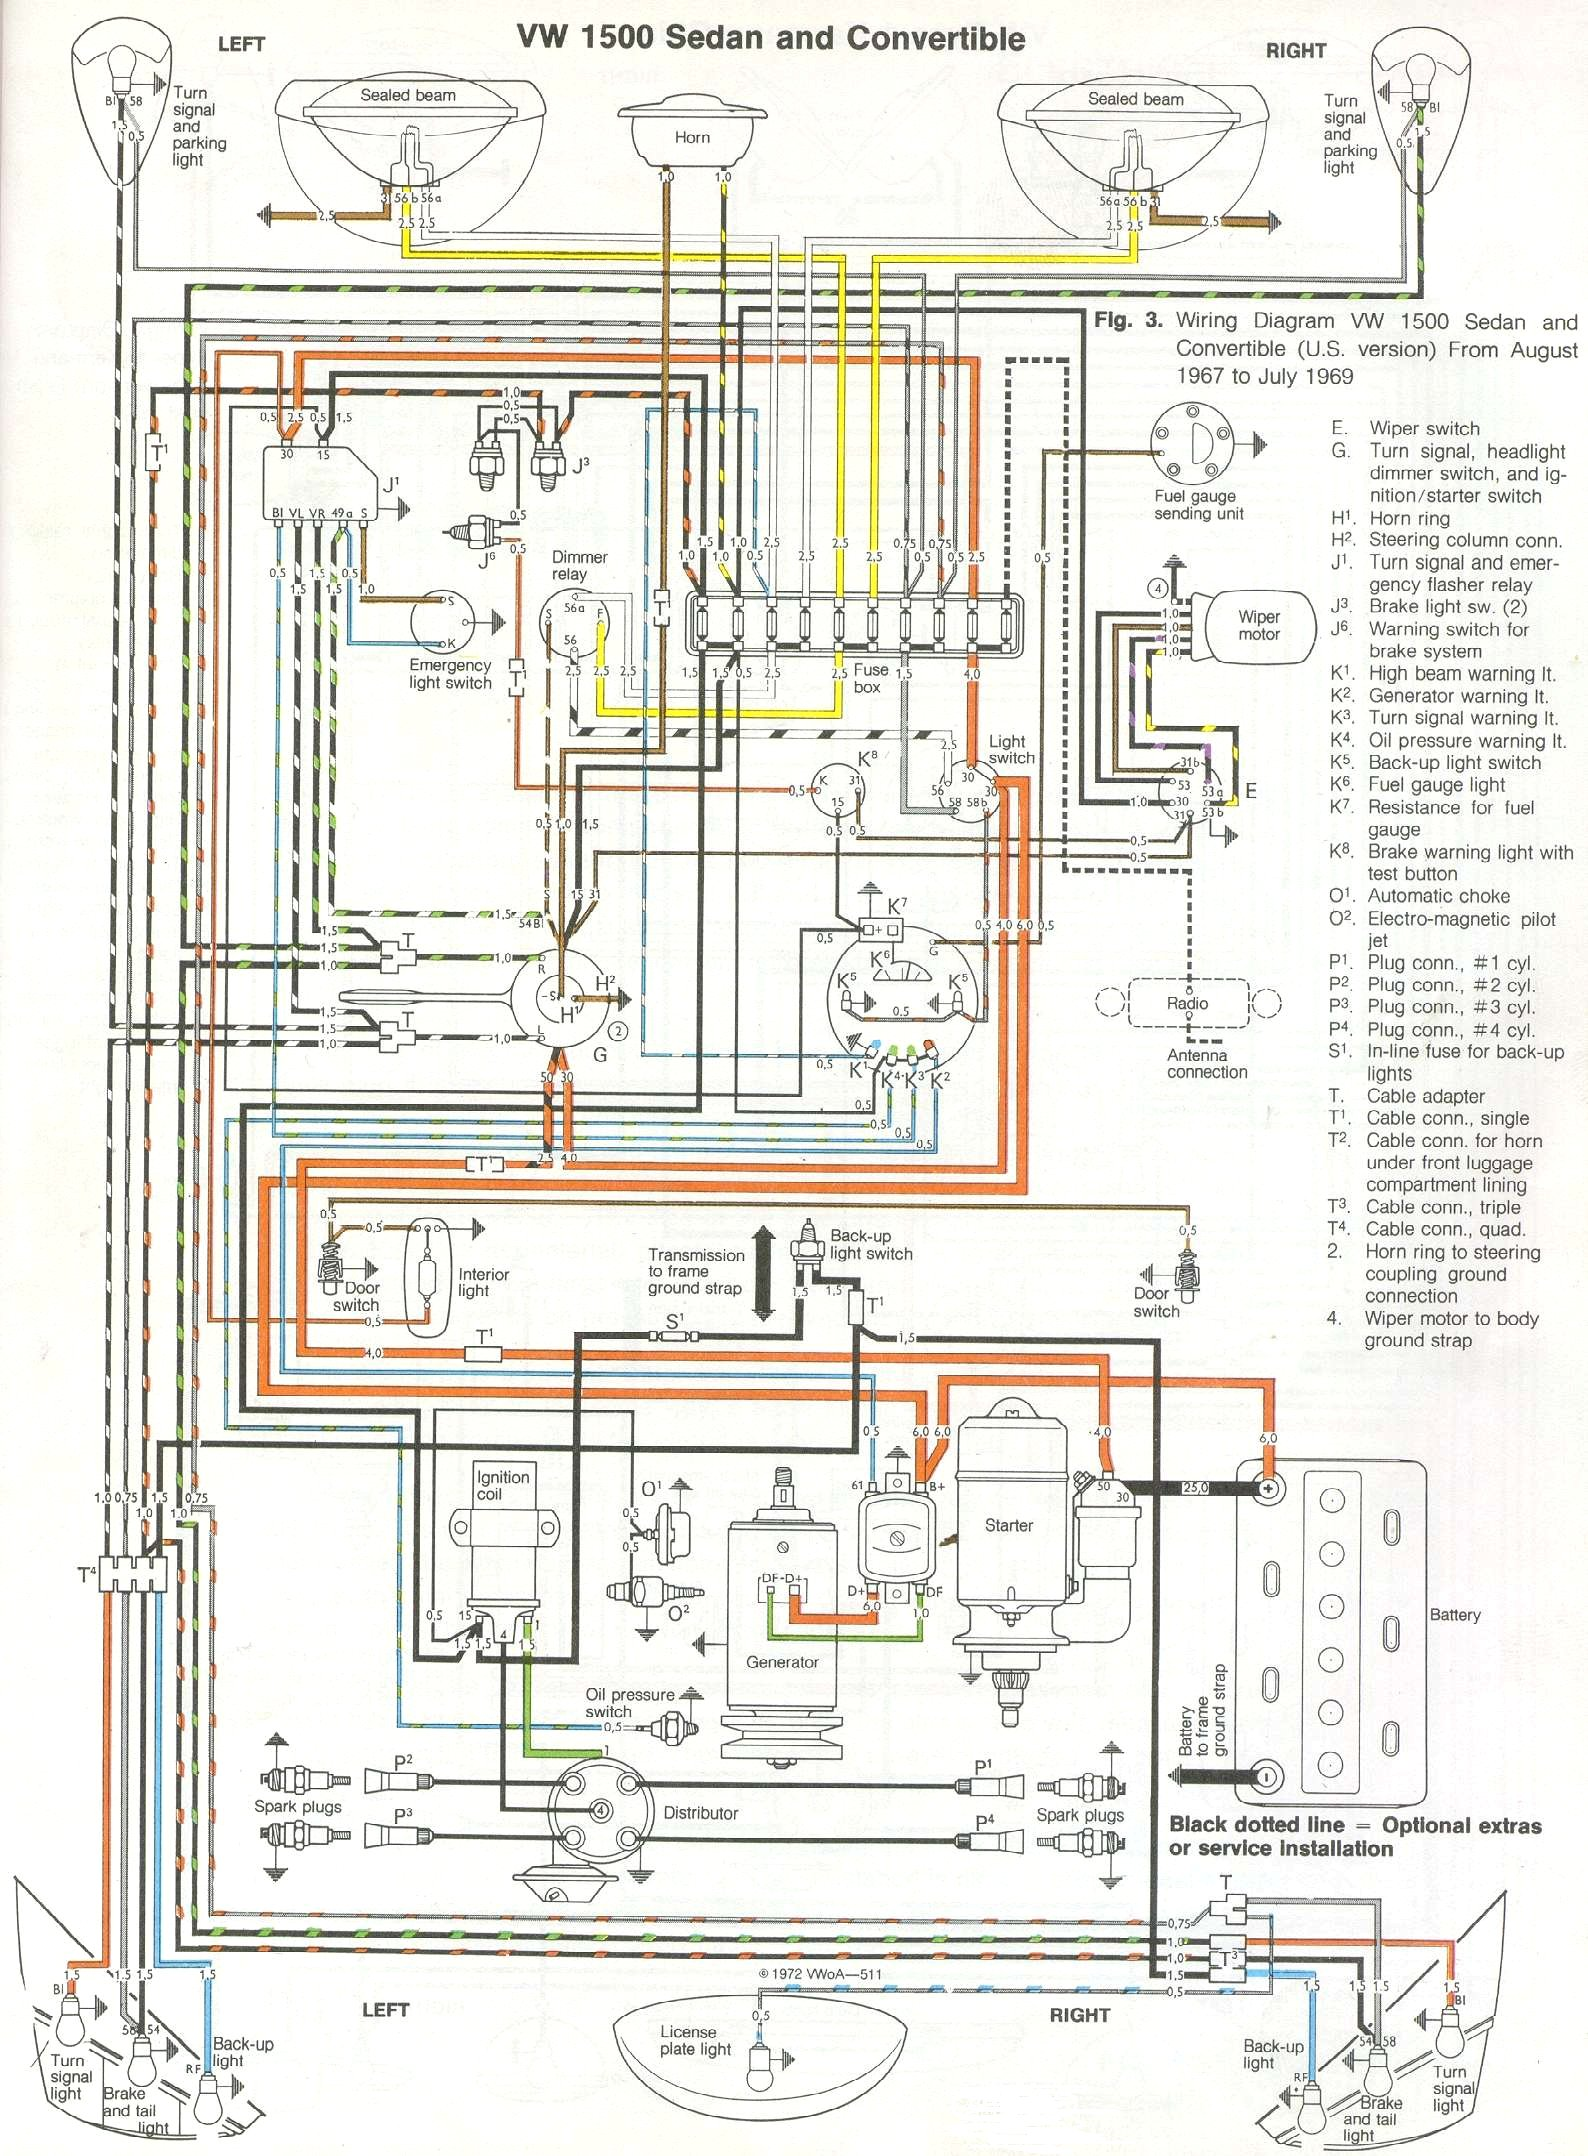 1968-69 Beetle Wiring Diagram (USA) | TheGoldenBug.com on volkswagen fuse diagram, volkswagen relay diagram, volkswagen chassis, volkswagen engine diagram, volkswagen clutch diagram, volkswagen fuse chart, volkswagen air conditioning, volkswagen charging system diagram, volkswagen transaxle diagram, volkswagen ignition diagram, volkswagen fuel diagram, volkswagen brakes diagram, volkswagen firing order, volkswagen torque specs, volkswagen oil diagram, volkswagen key diagram, volkswagen vacuum diagram, volkswagen electrical system, volkswagen r400,